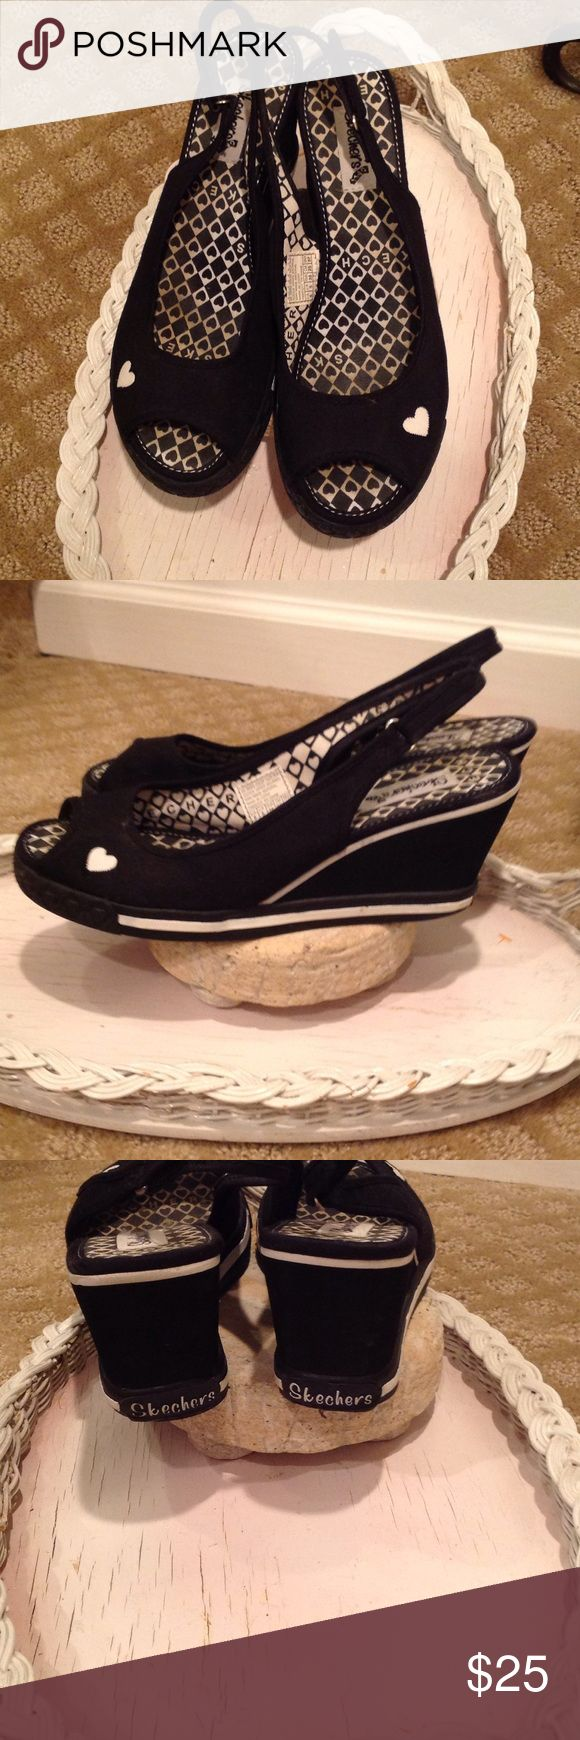 BLACK SKECHERS PEEP TOE WEDGES♥️ CUTE HEARTS ♥️ ON THESE SKECHERS WEDGES MAKE THE SHOE👍. GREAT WORN CONDITION. ADJUSTABLE STRAP. SO PERFECT FOR A DAY OUT♥️ Skechers Shoes Wedges